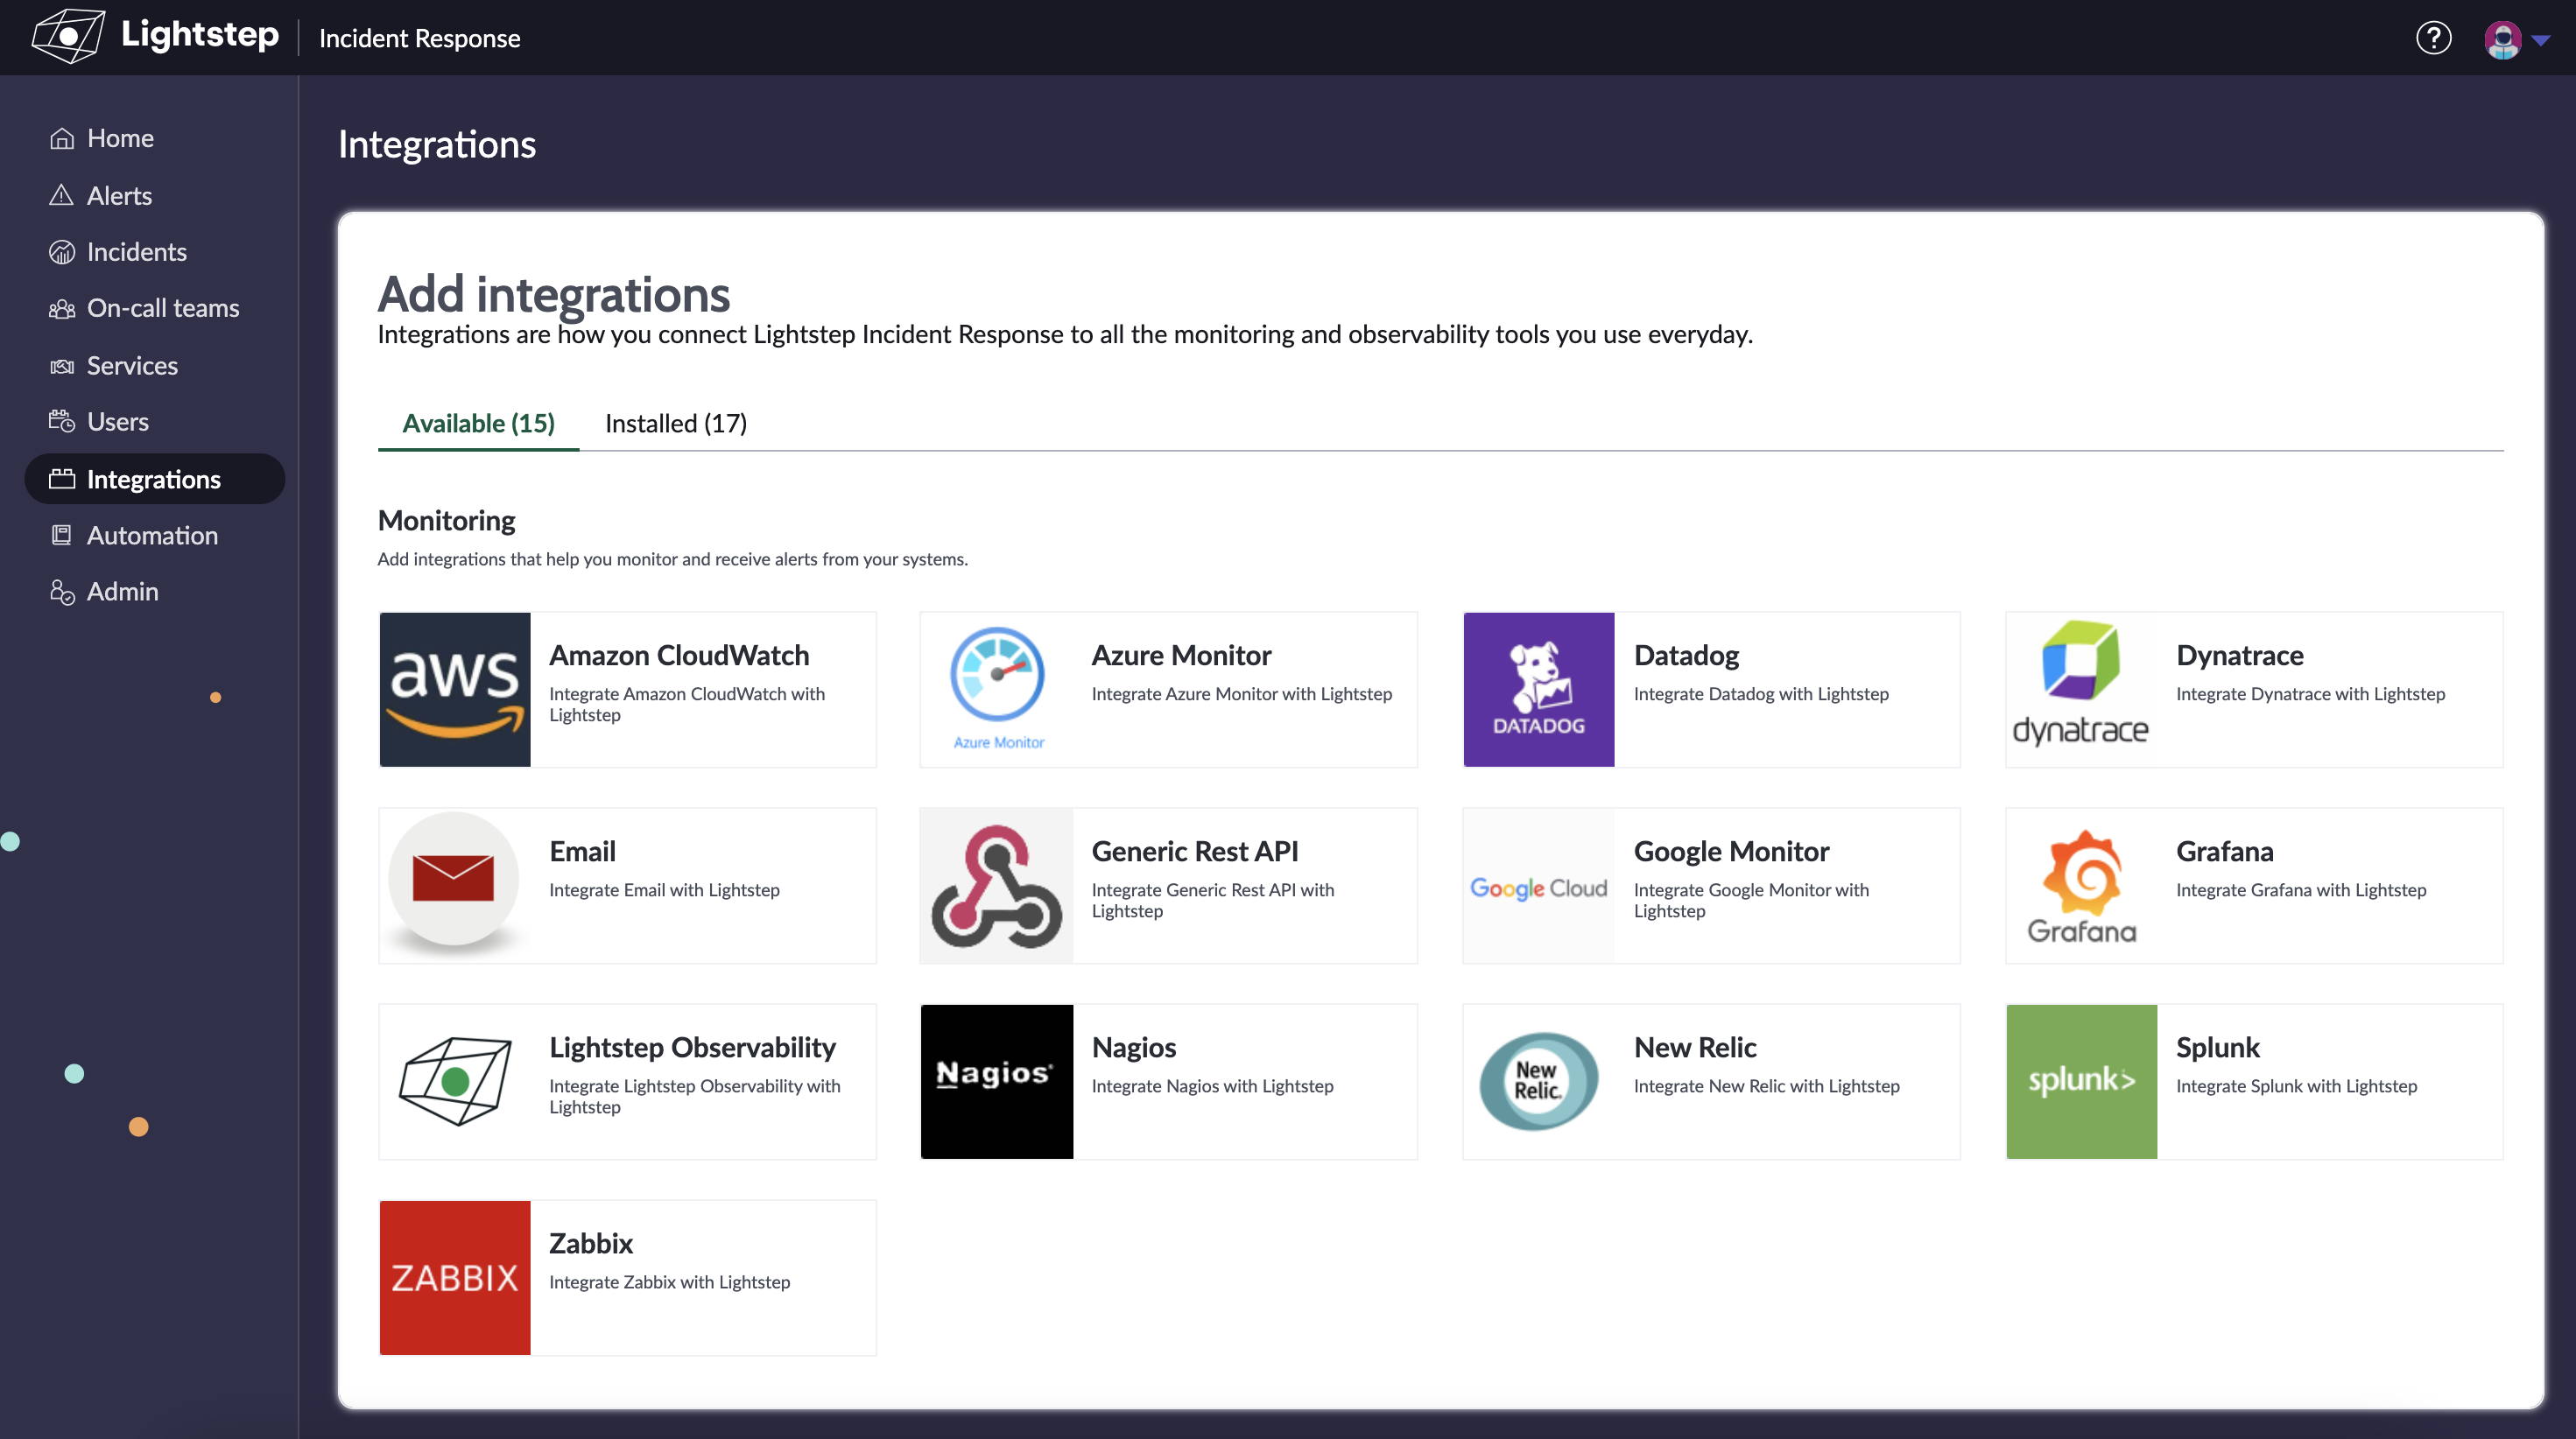 The Integrations landing page.